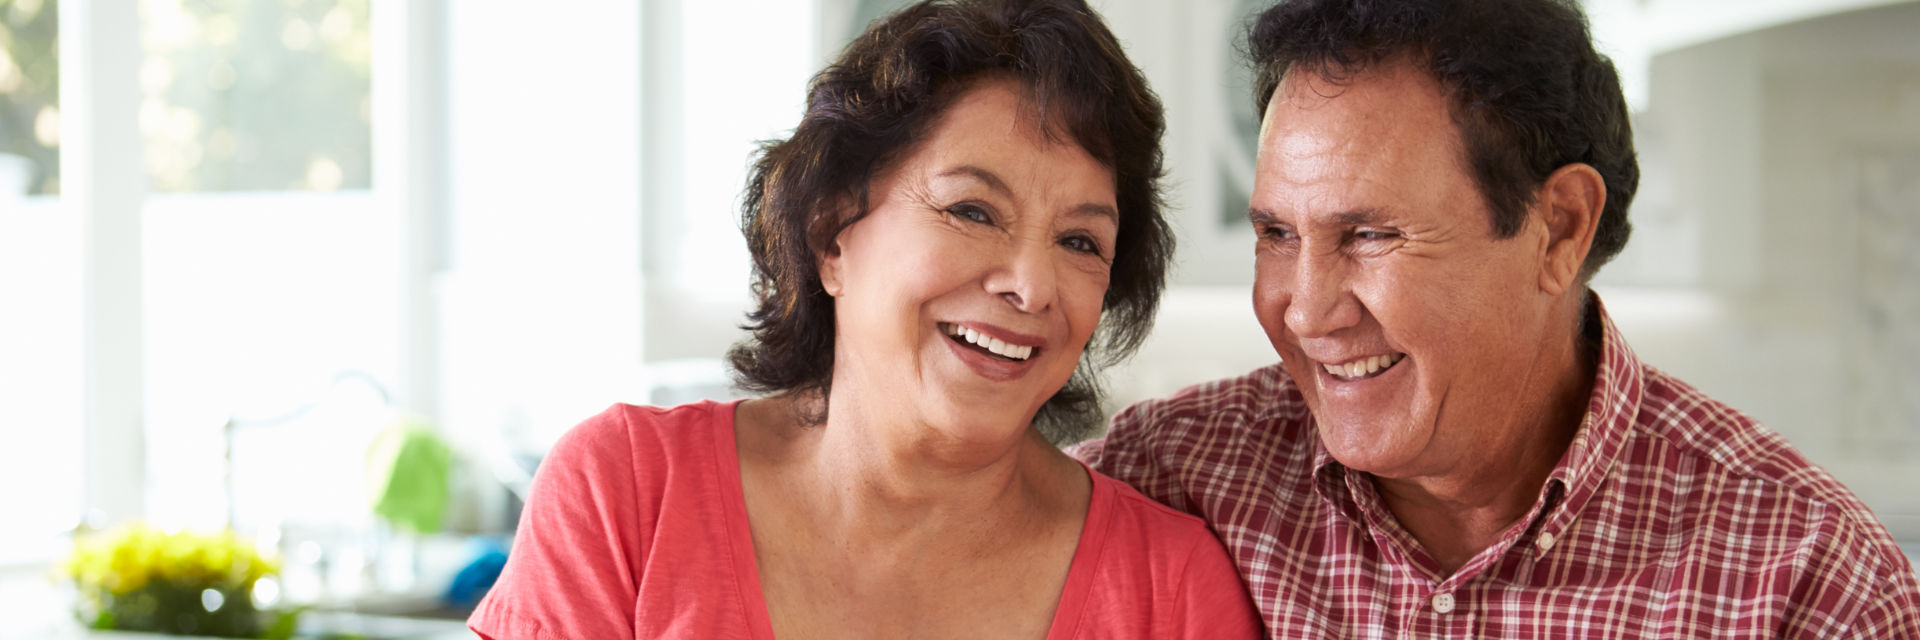 A broadly smiling senior couple showing their teeth after dental restoration procedures.